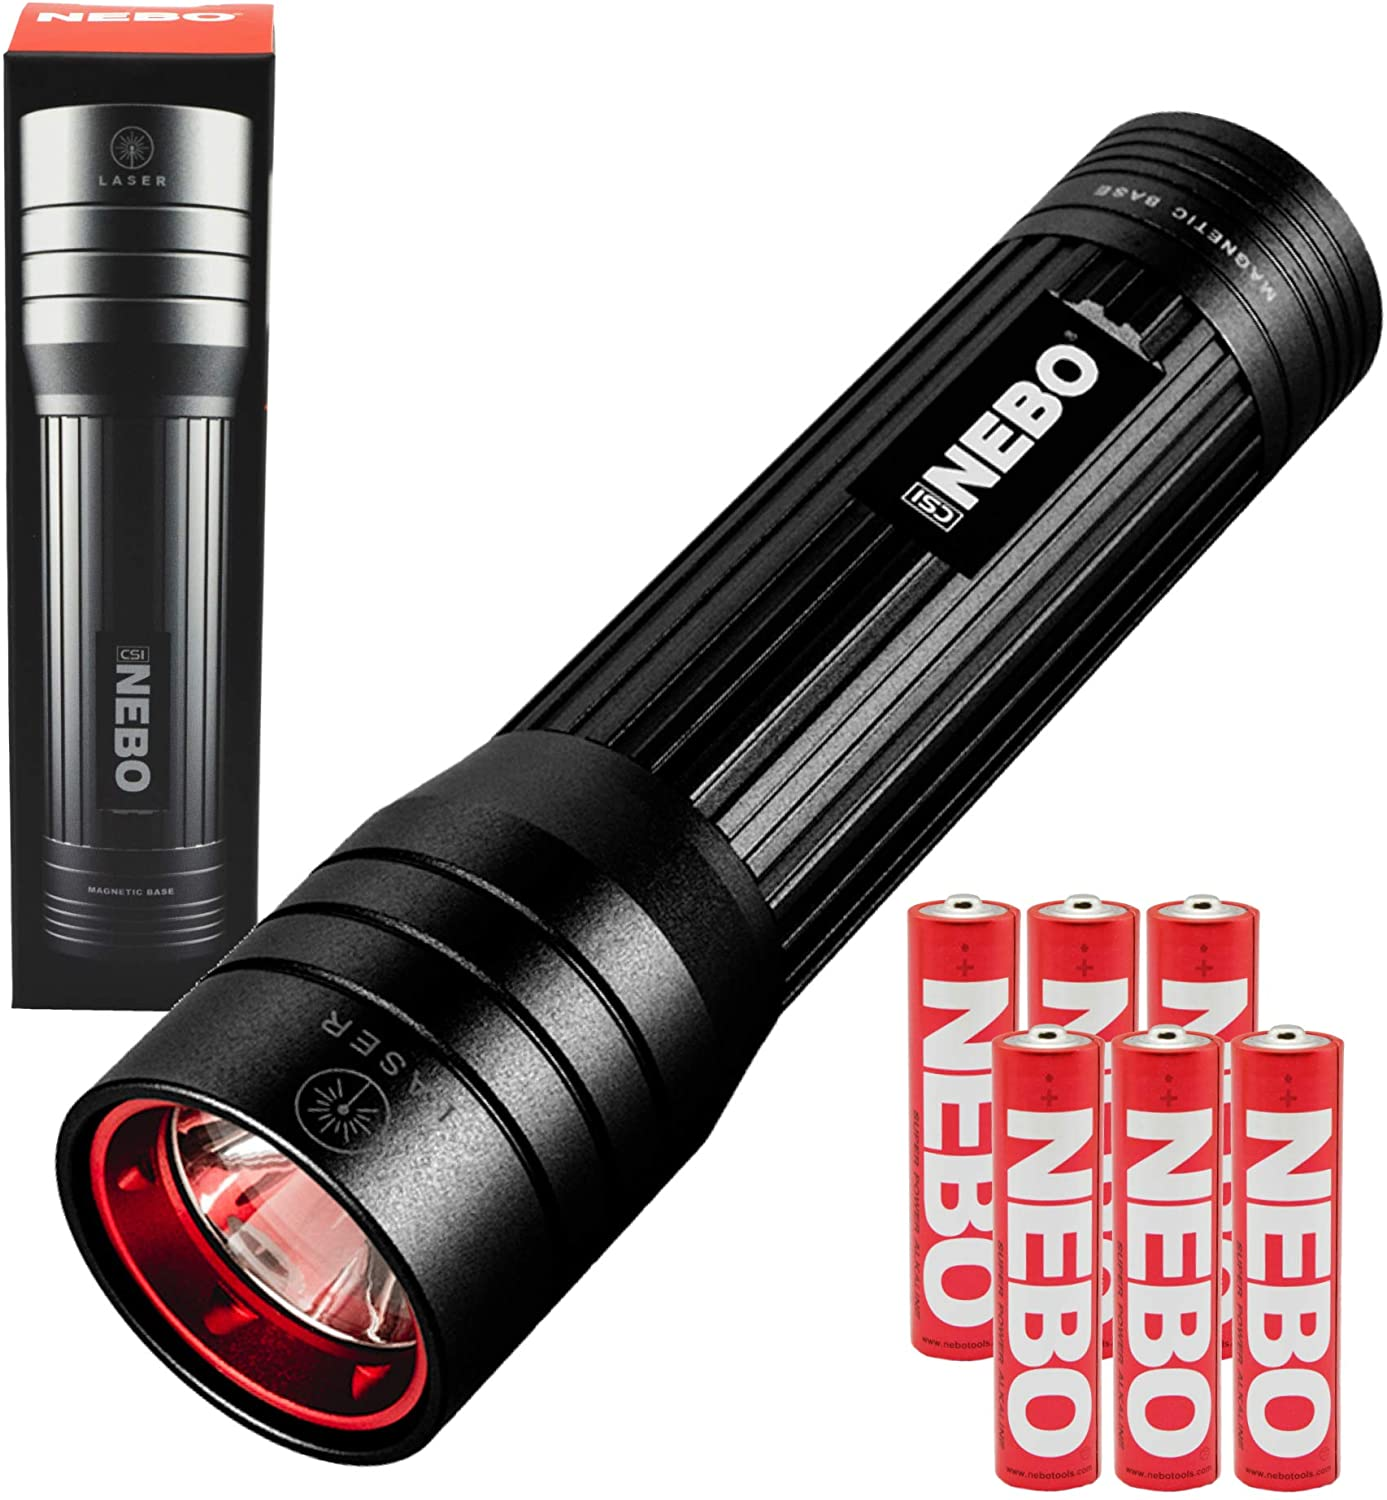 Nebo CSI Flashlight 250 Lumen LED Light with Magnetic Base and Red Light Bundle includes 3 Extra AAA Batteries (Black)